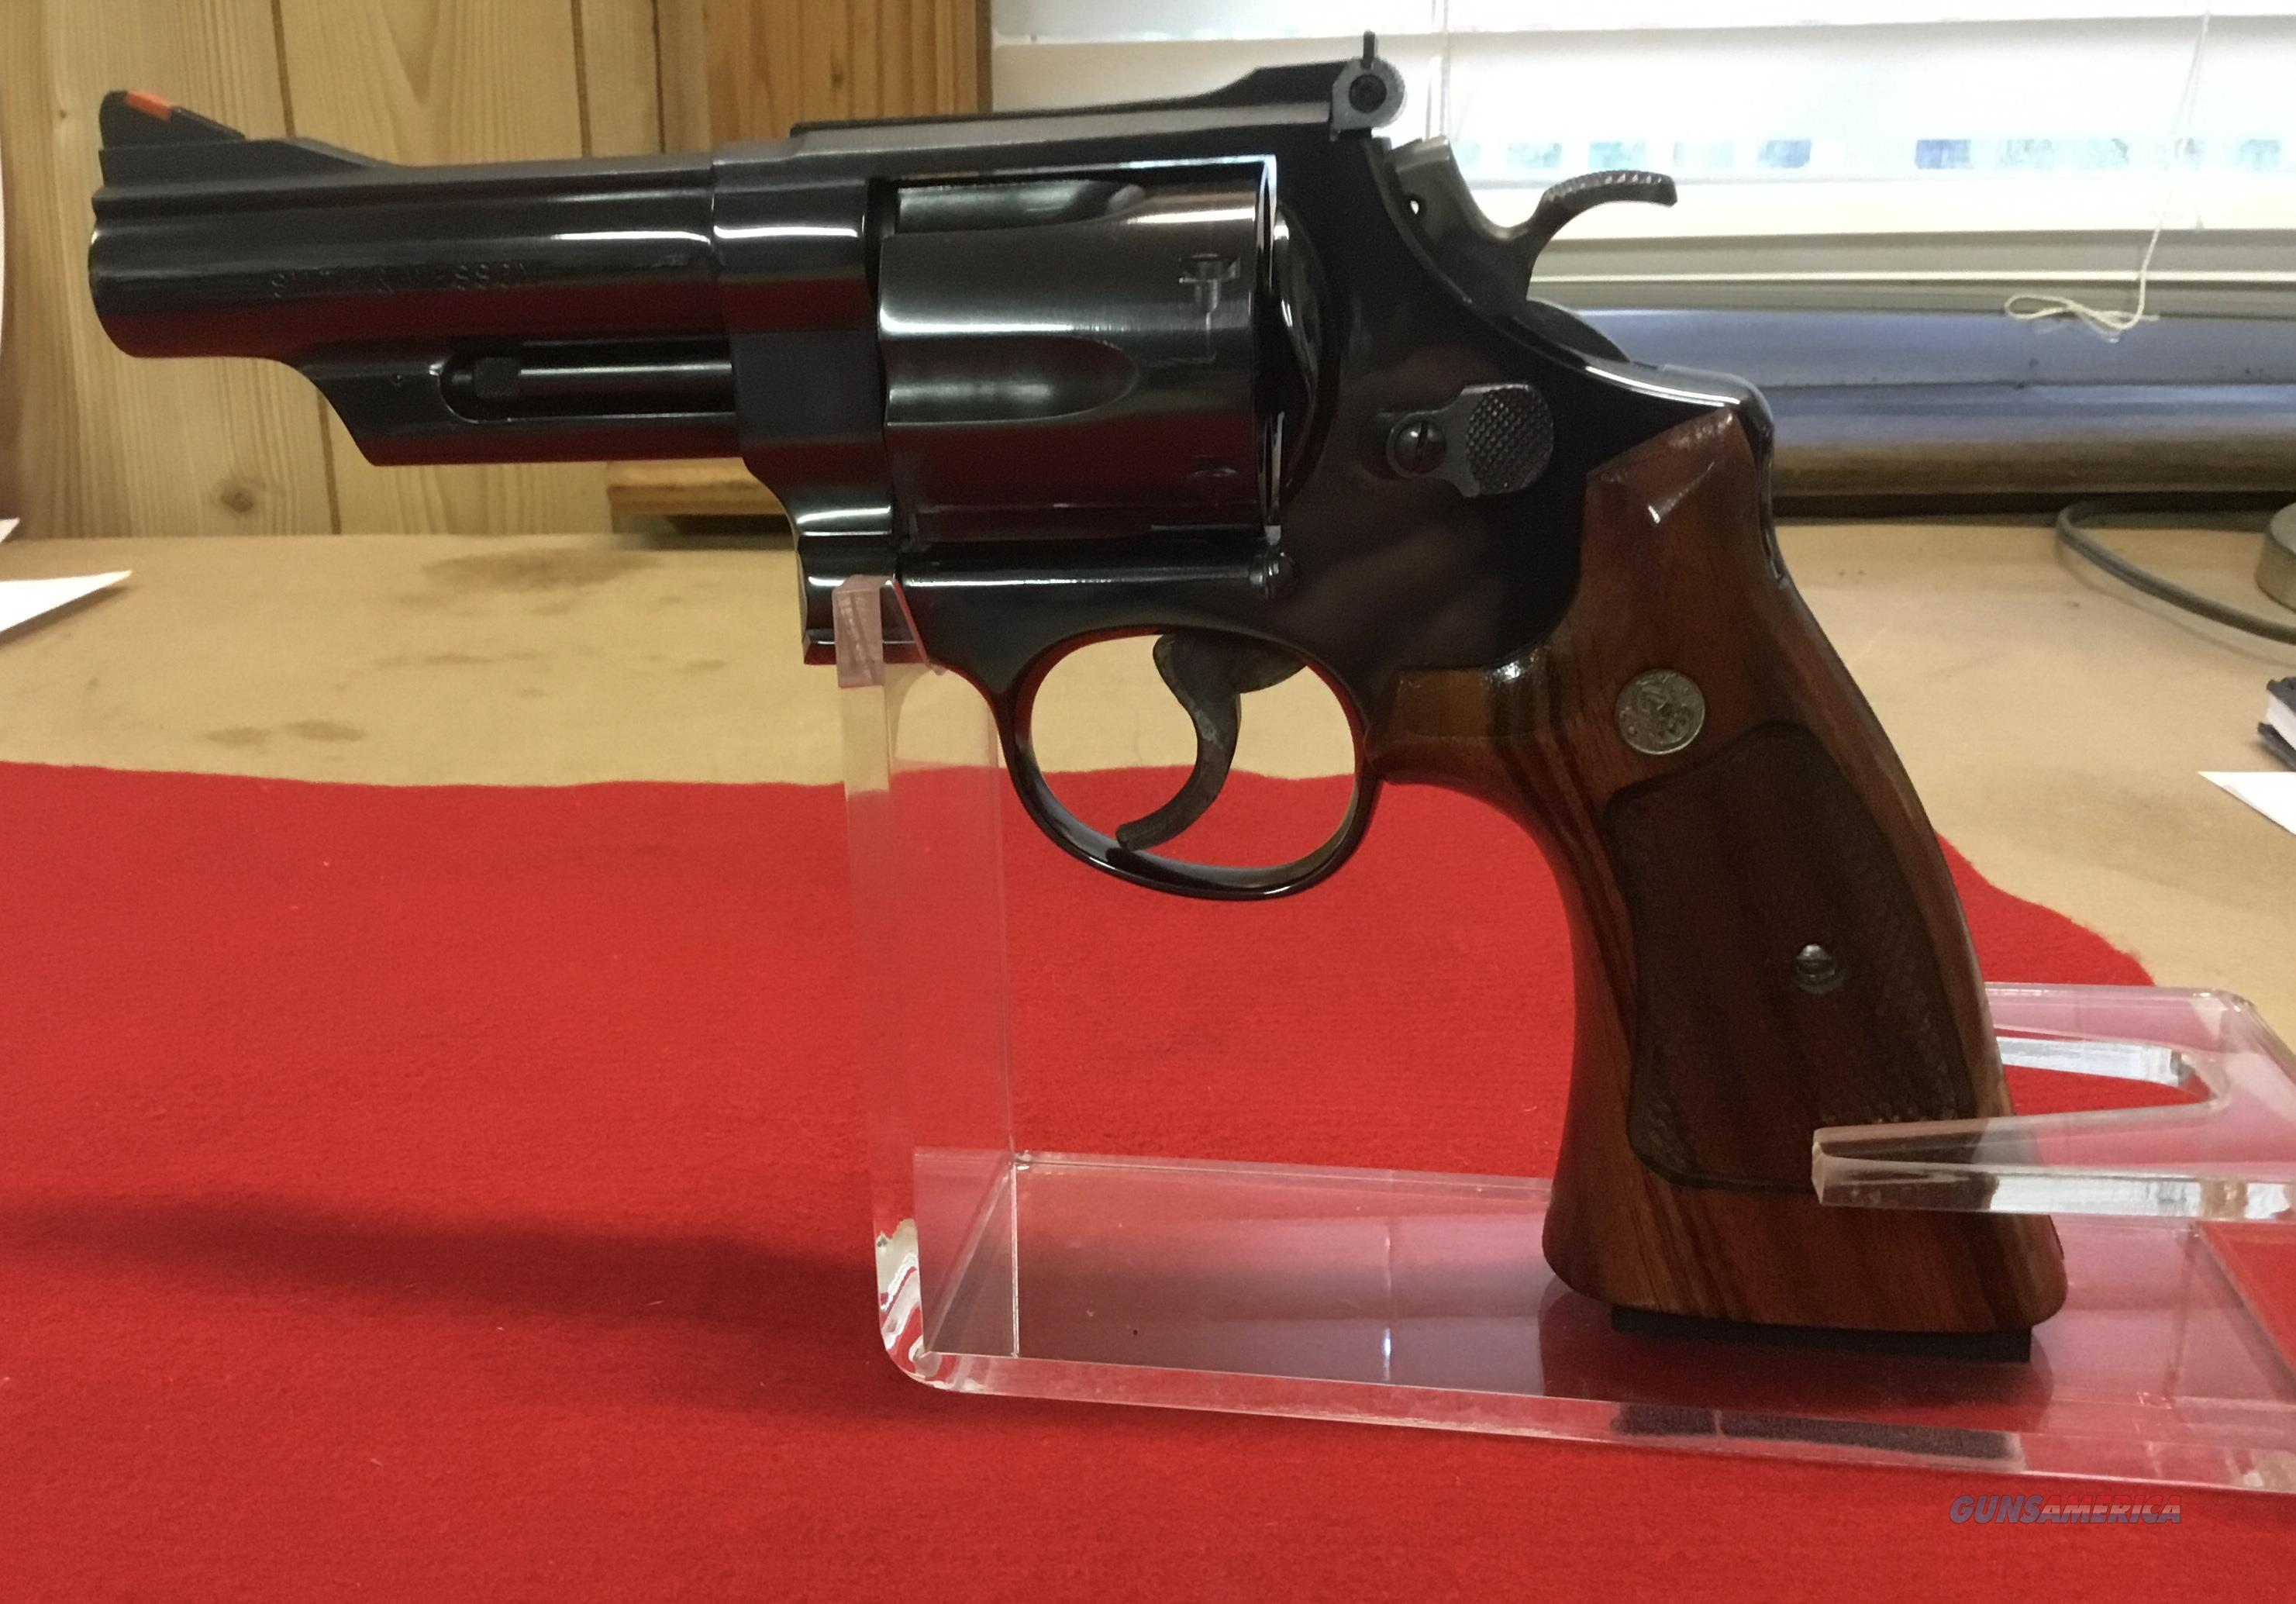 Immaculate Smith and Wesson model 29-3